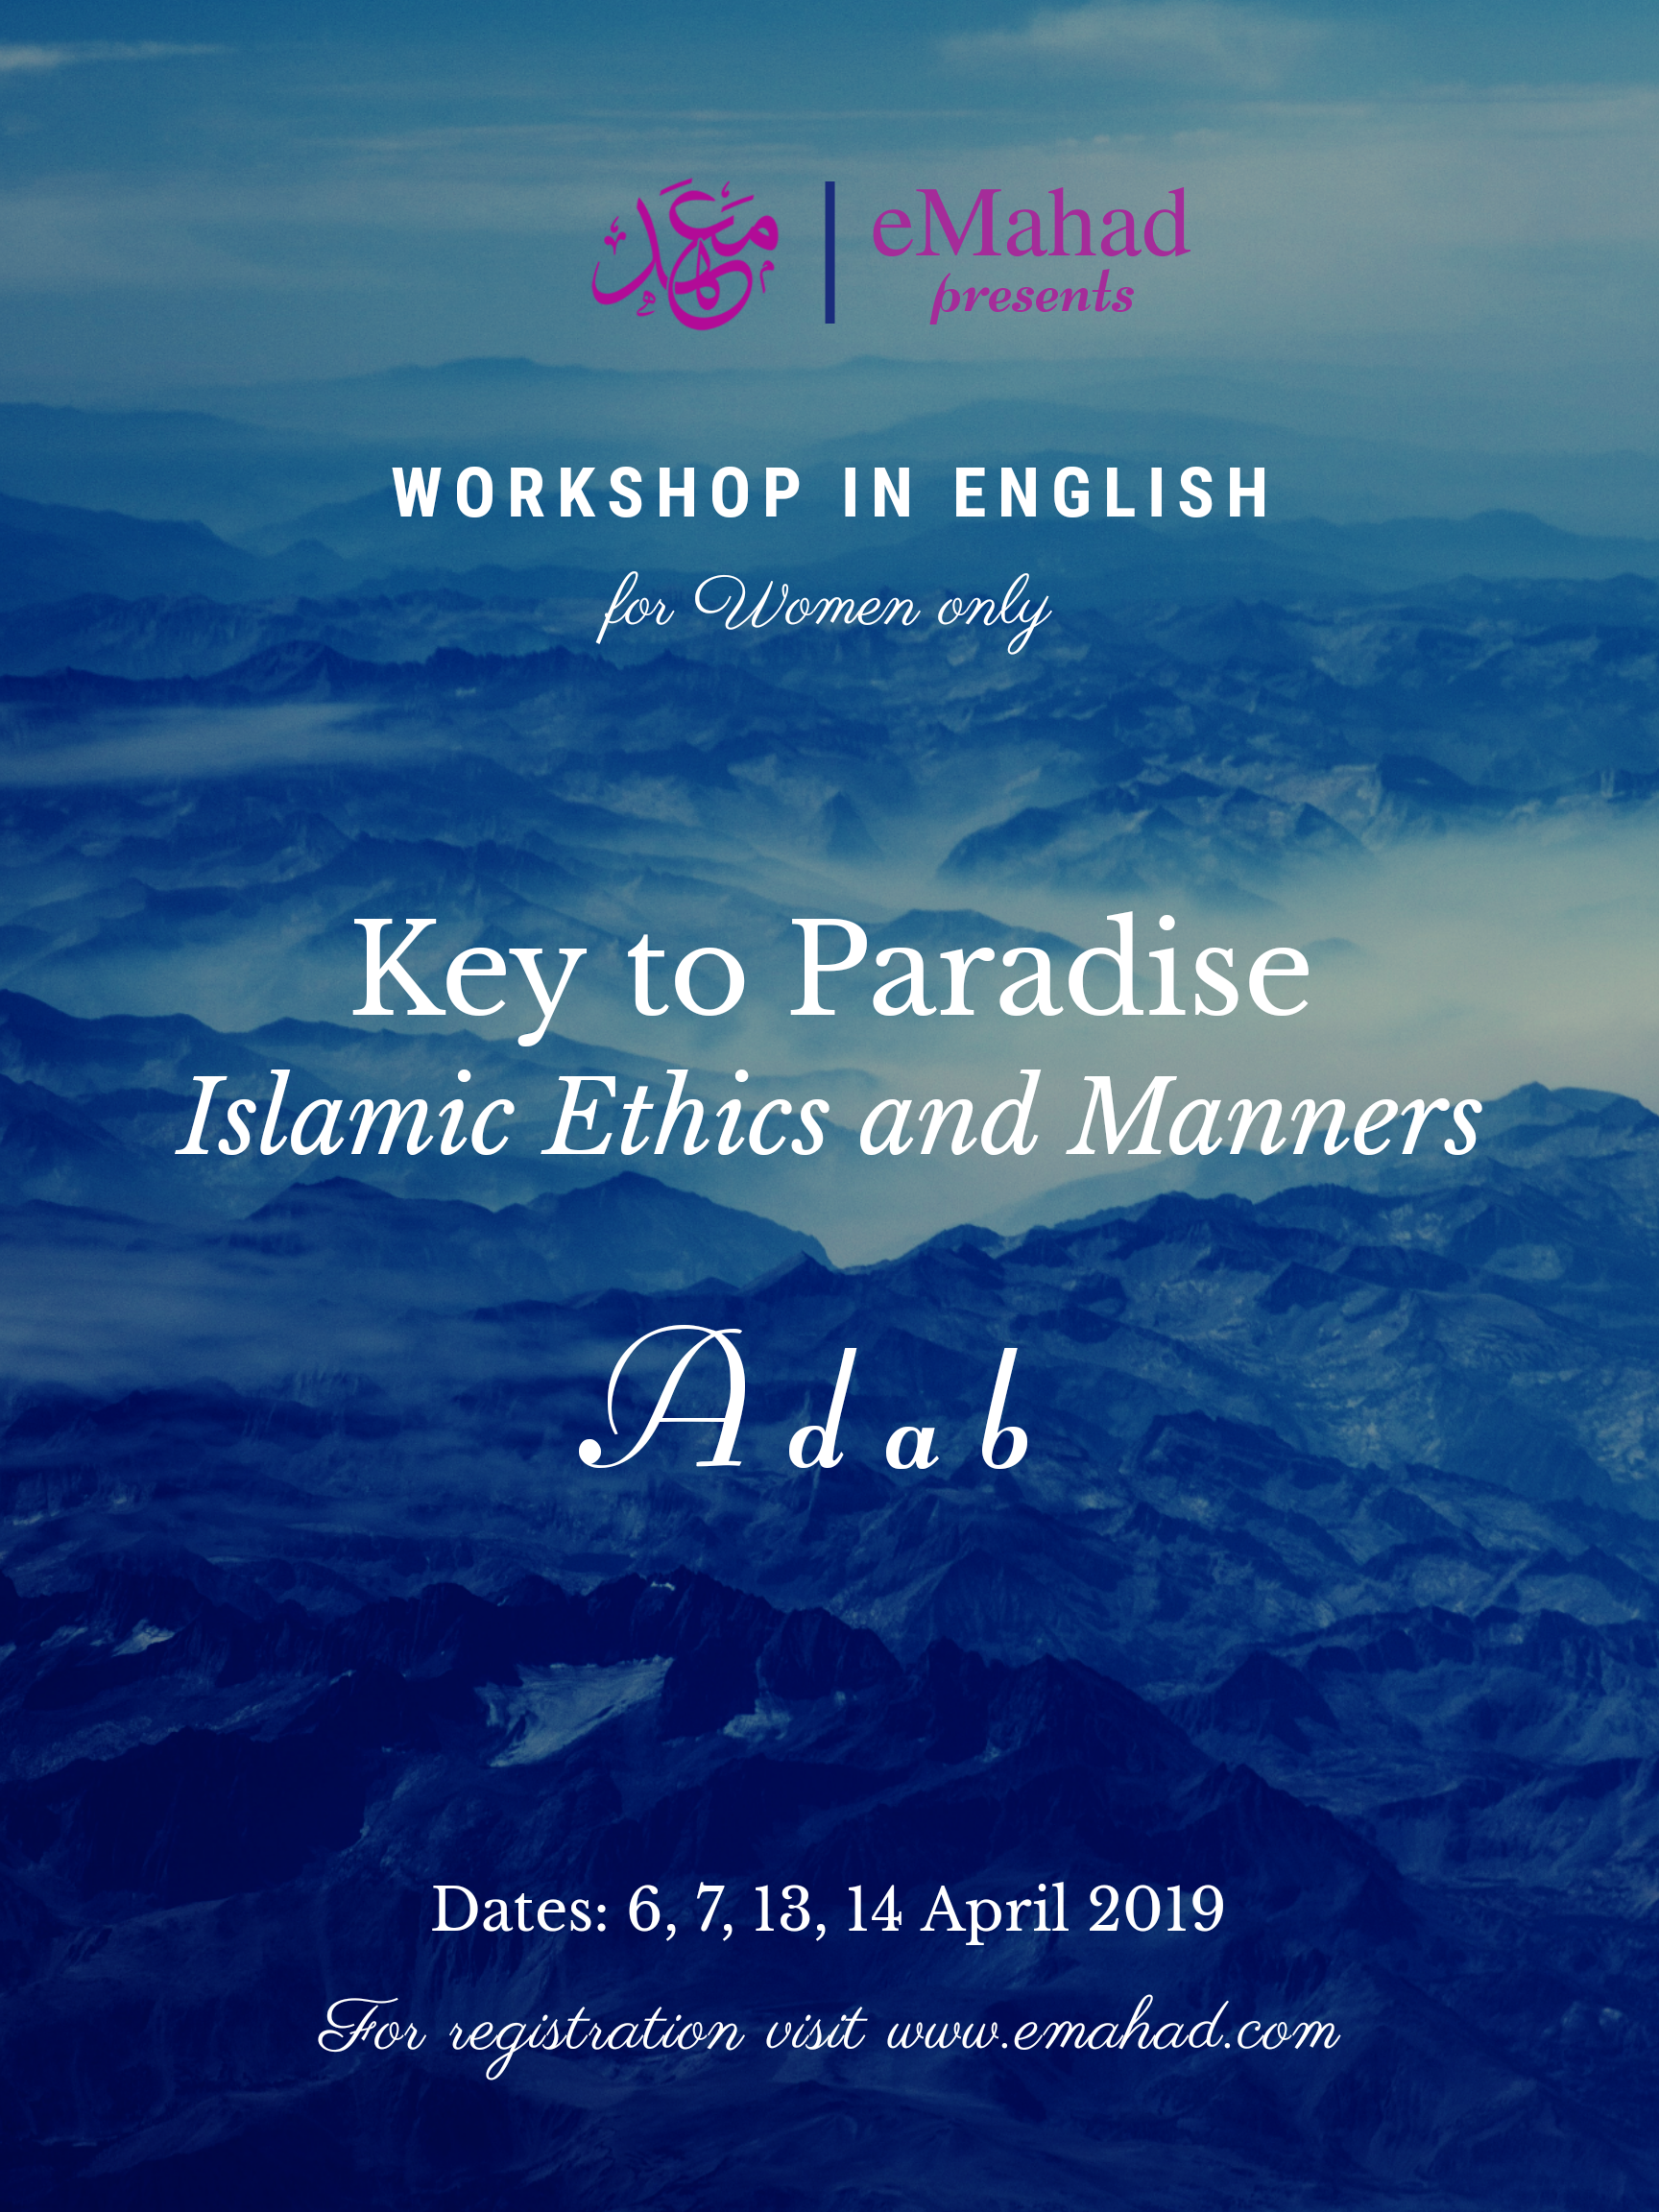 Key to Paradise -Islamic Ethics and Manners